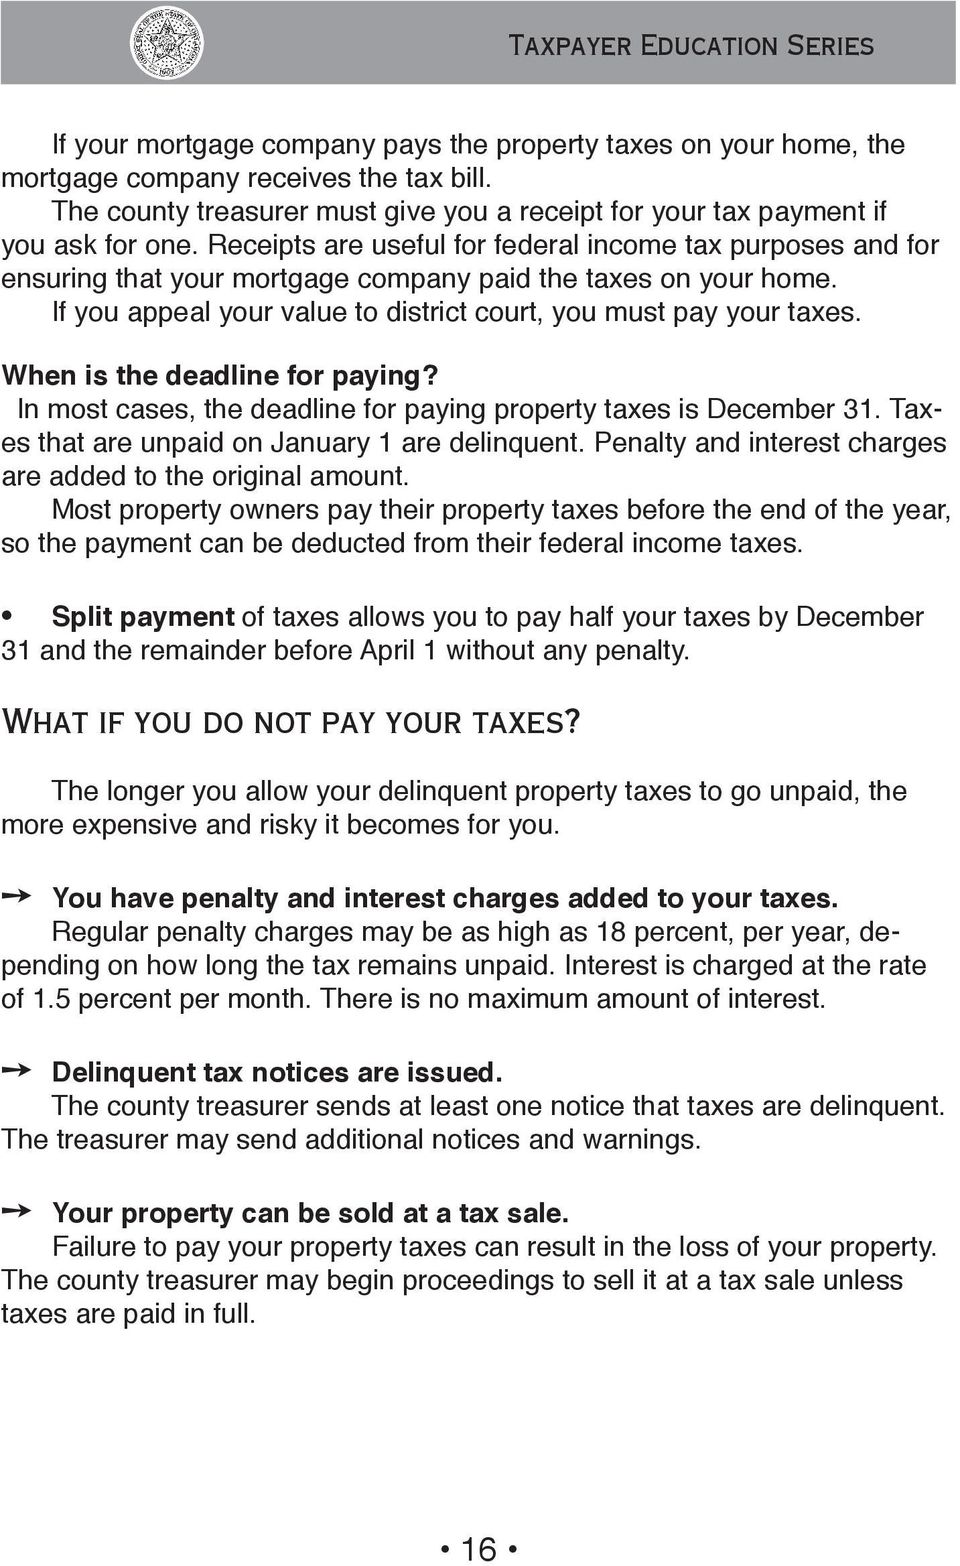 Receipts are useful for federal income tax purposes and for ensuring that your mortgage company paid the taxes on your home. If you appeal your value to district court, you must pay your taxes.